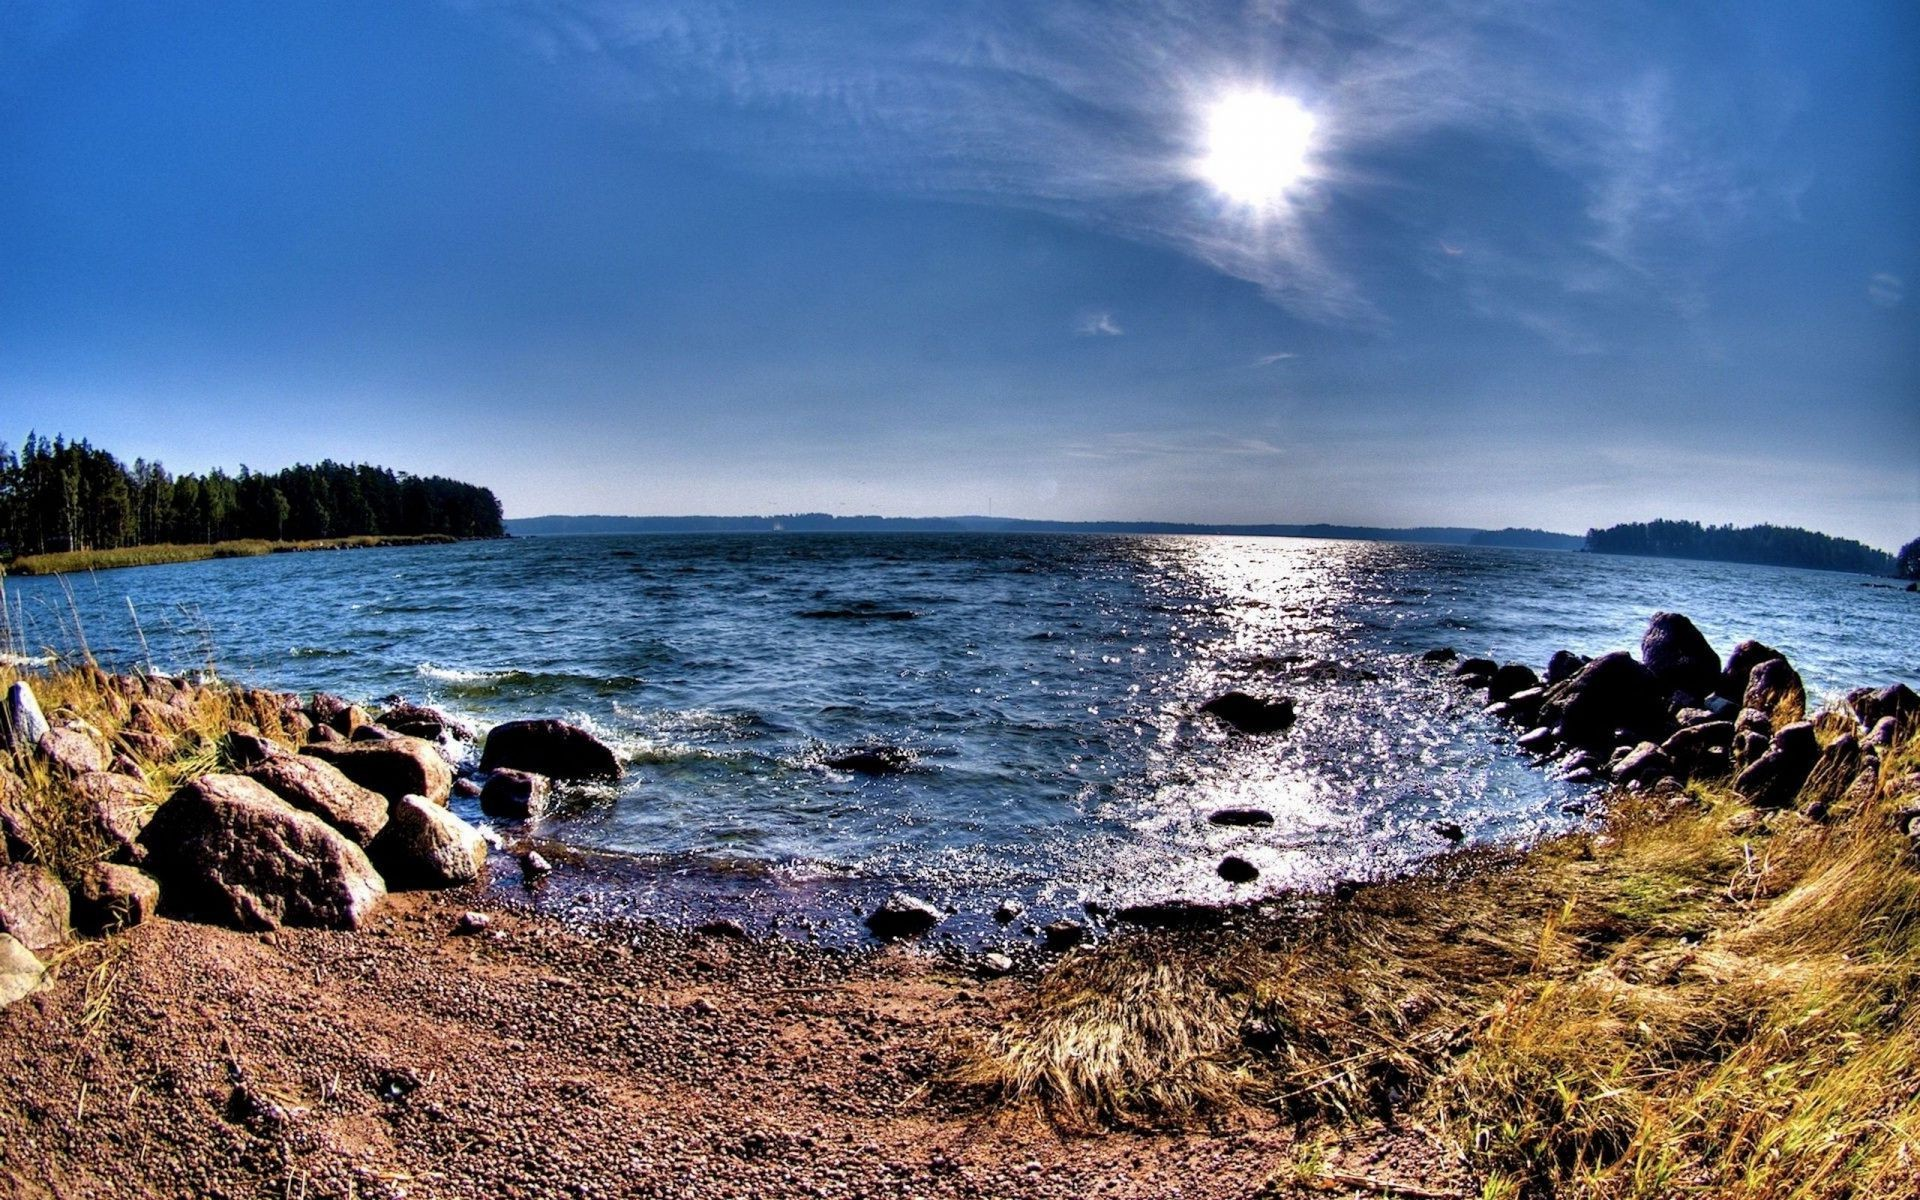 lake water sea ocean seashore beach landscape sky rock travel nature seascape sunset shore outdoors scenic summer surf